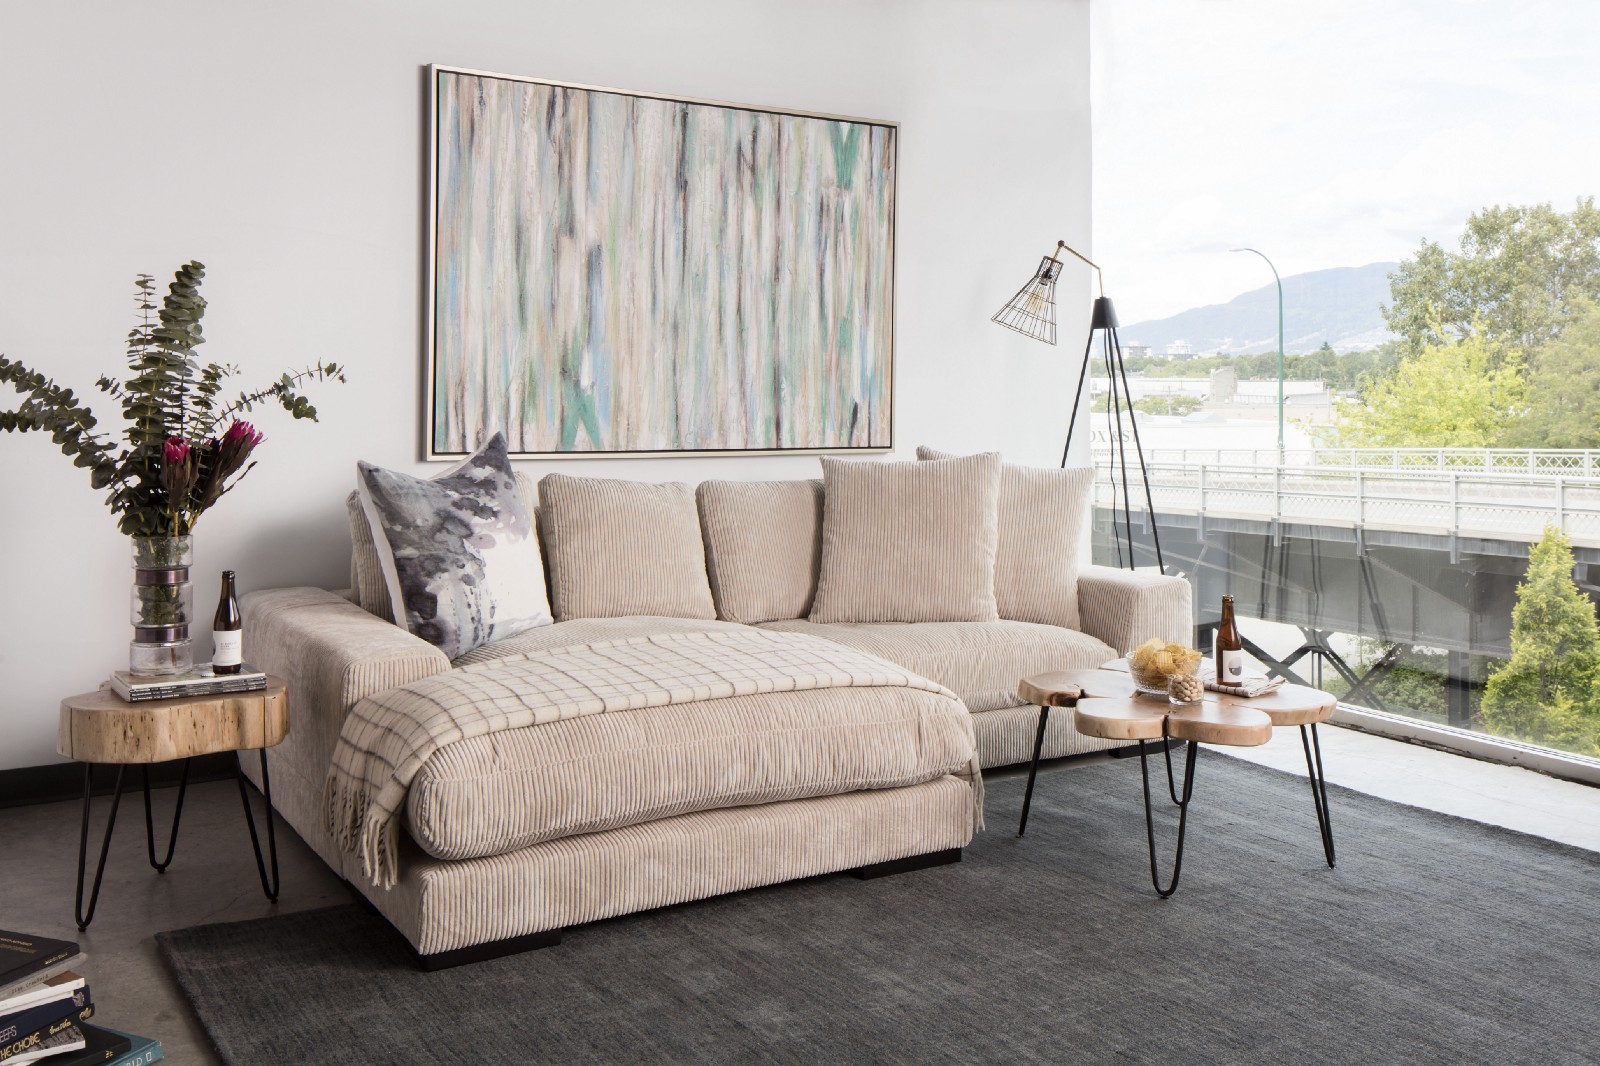 color sofa narrow depth sectional humble hues the five best colors for sofas france son medium if you choose a beige essentially have blank slate around which to build rest of your decor